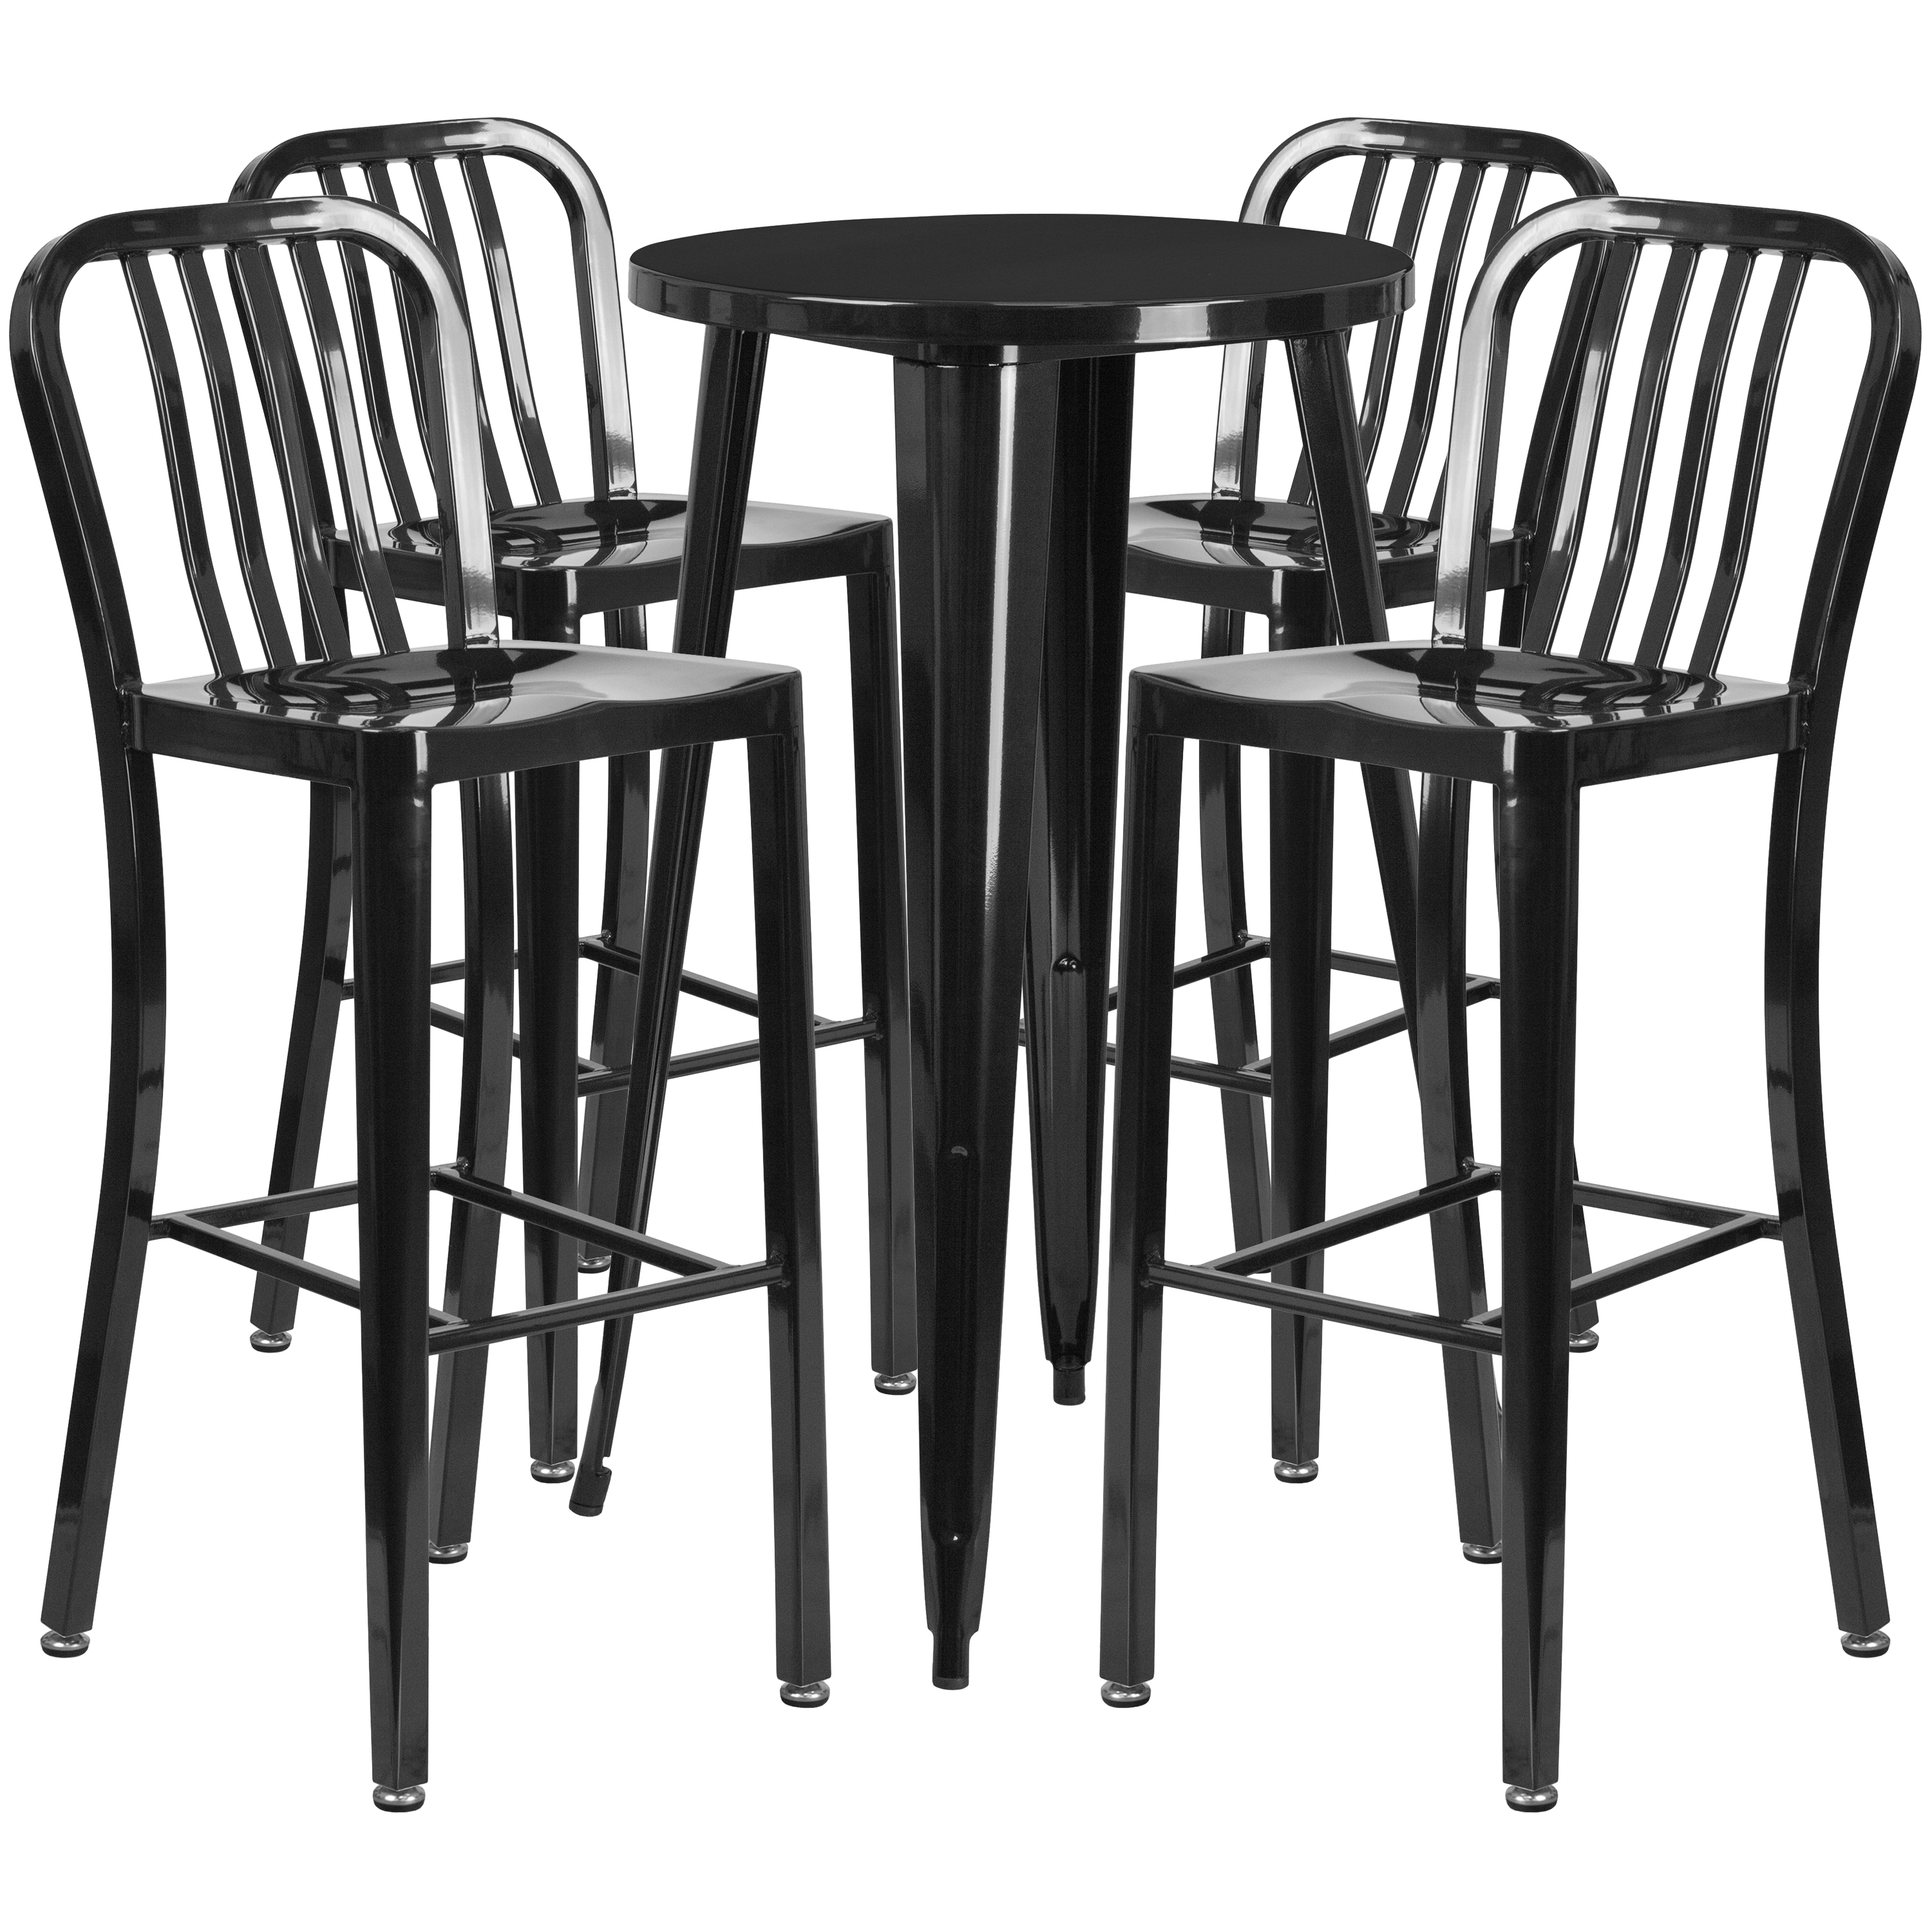 """Flash Furniture 24"""" Round Metal Indoor-Outdoor Bar Table Set with 4 Vertical Slat Back Barstools, Multiple Colors"""